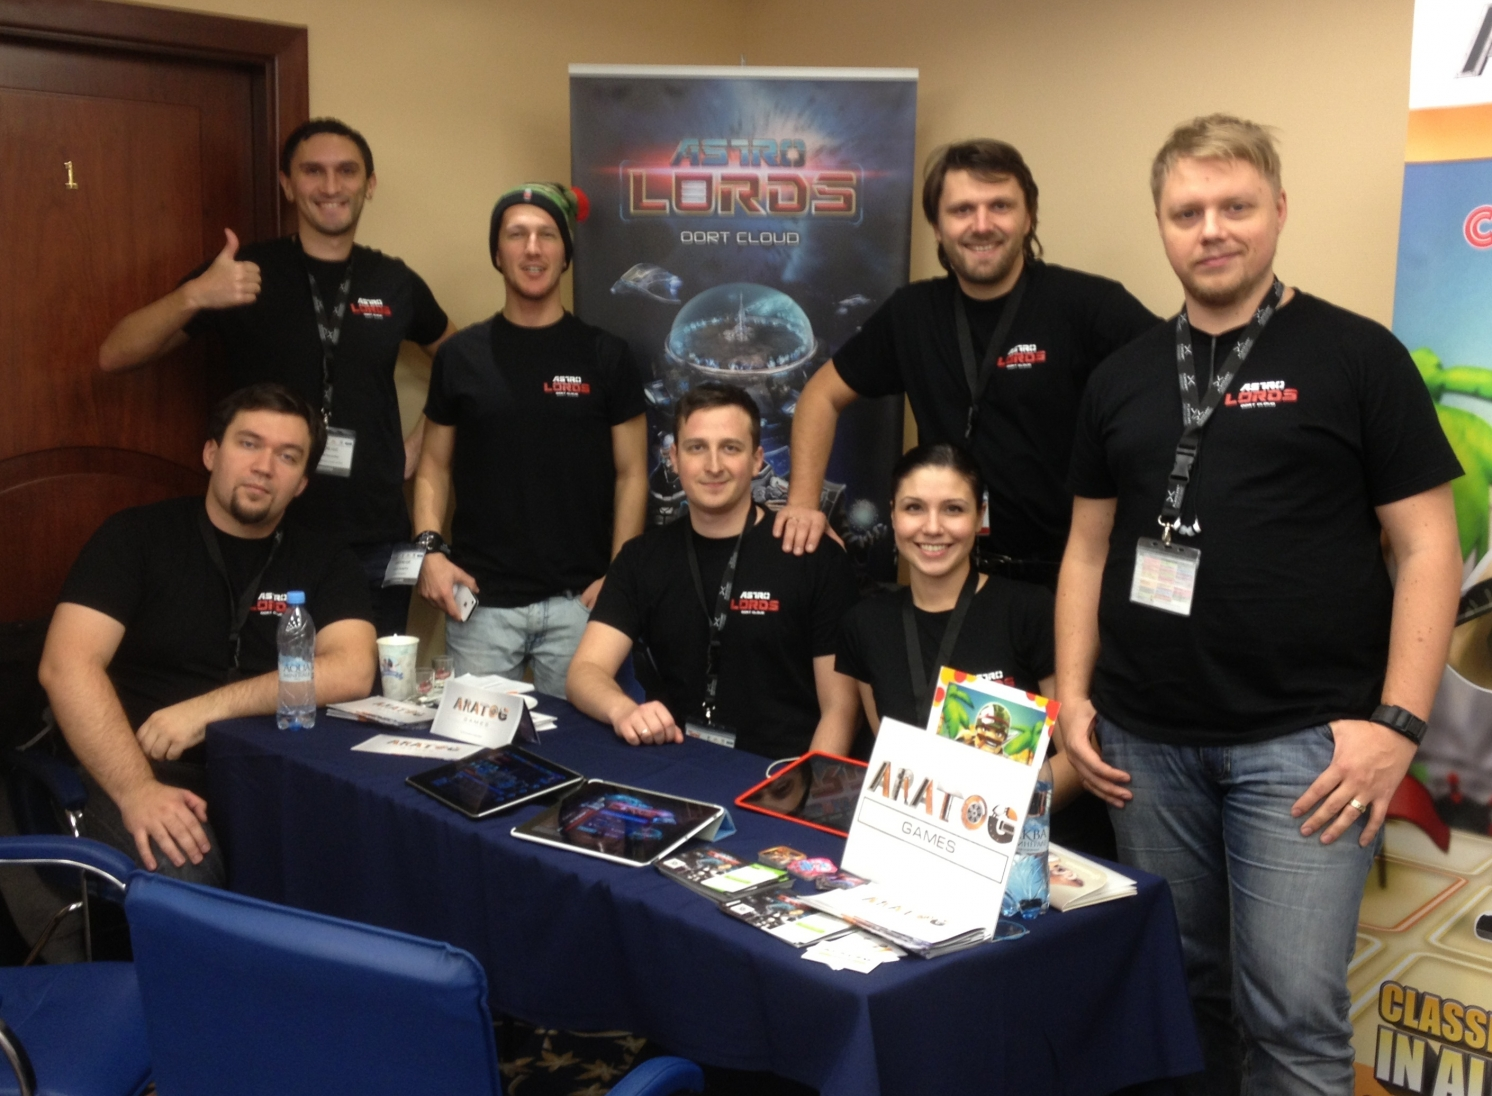 AstroLords team at DevGAMM conference